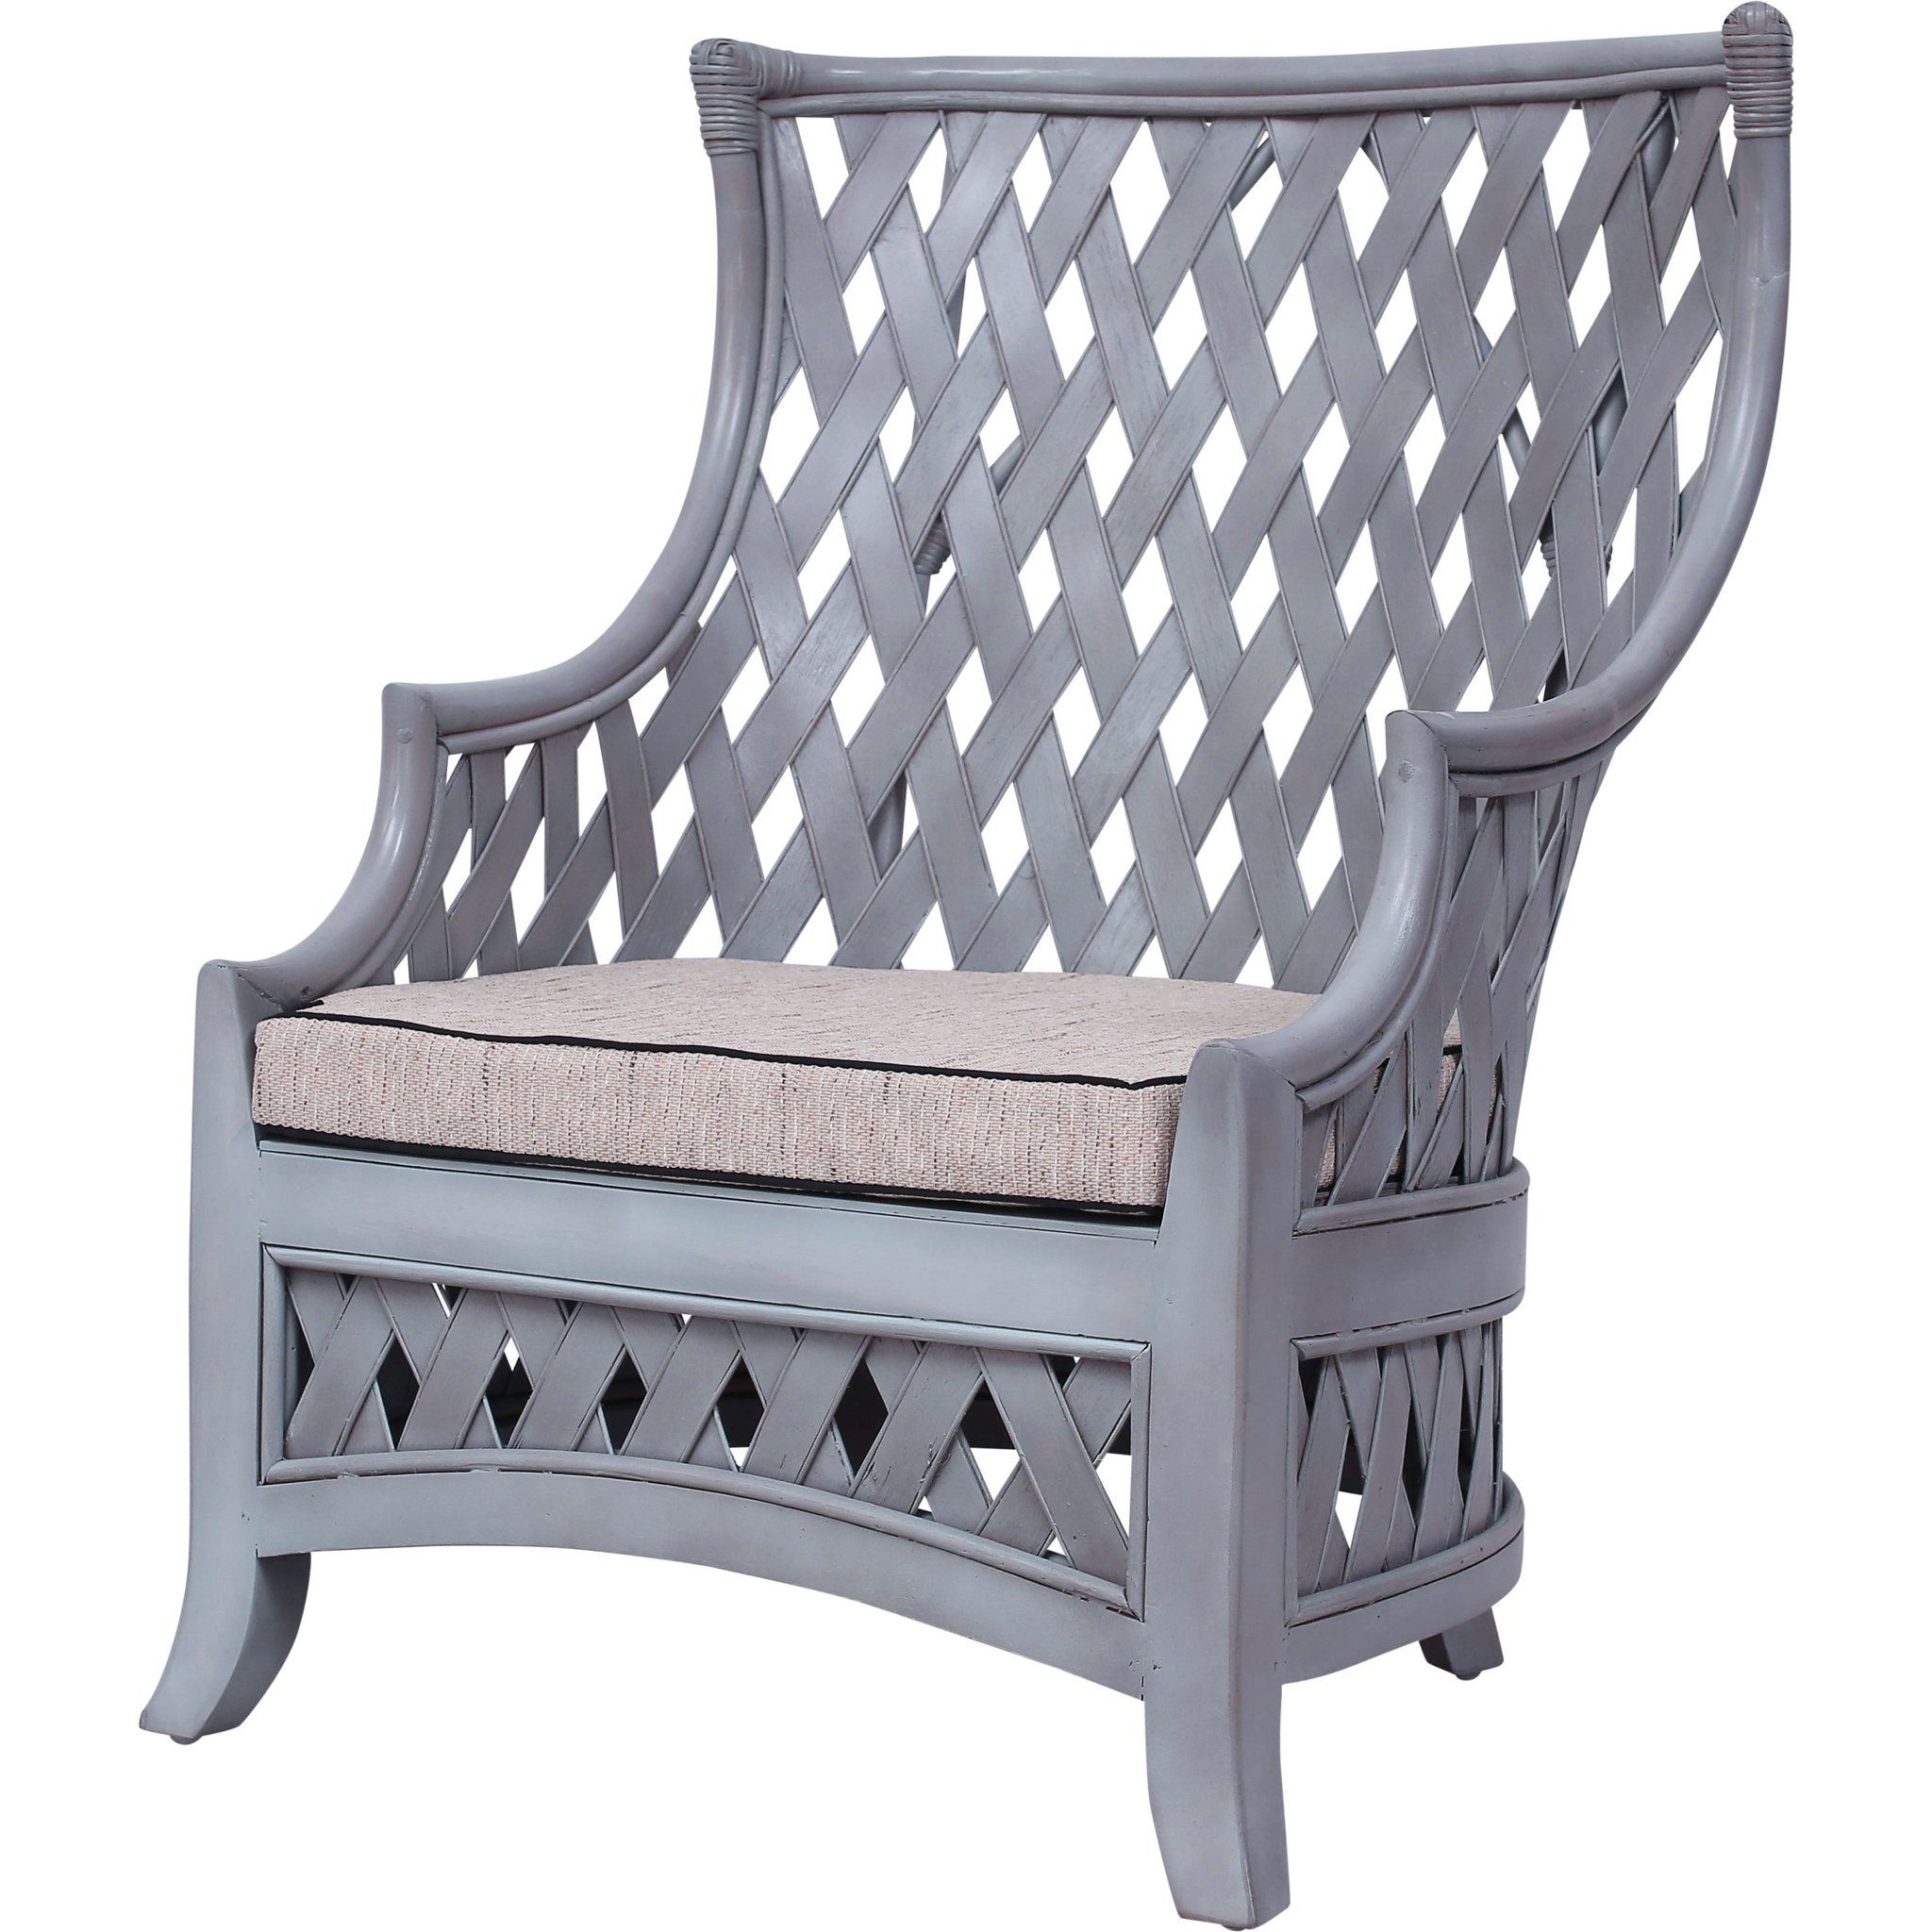 Blanco Woven Rattan Club Chair with Seat Cushion Club